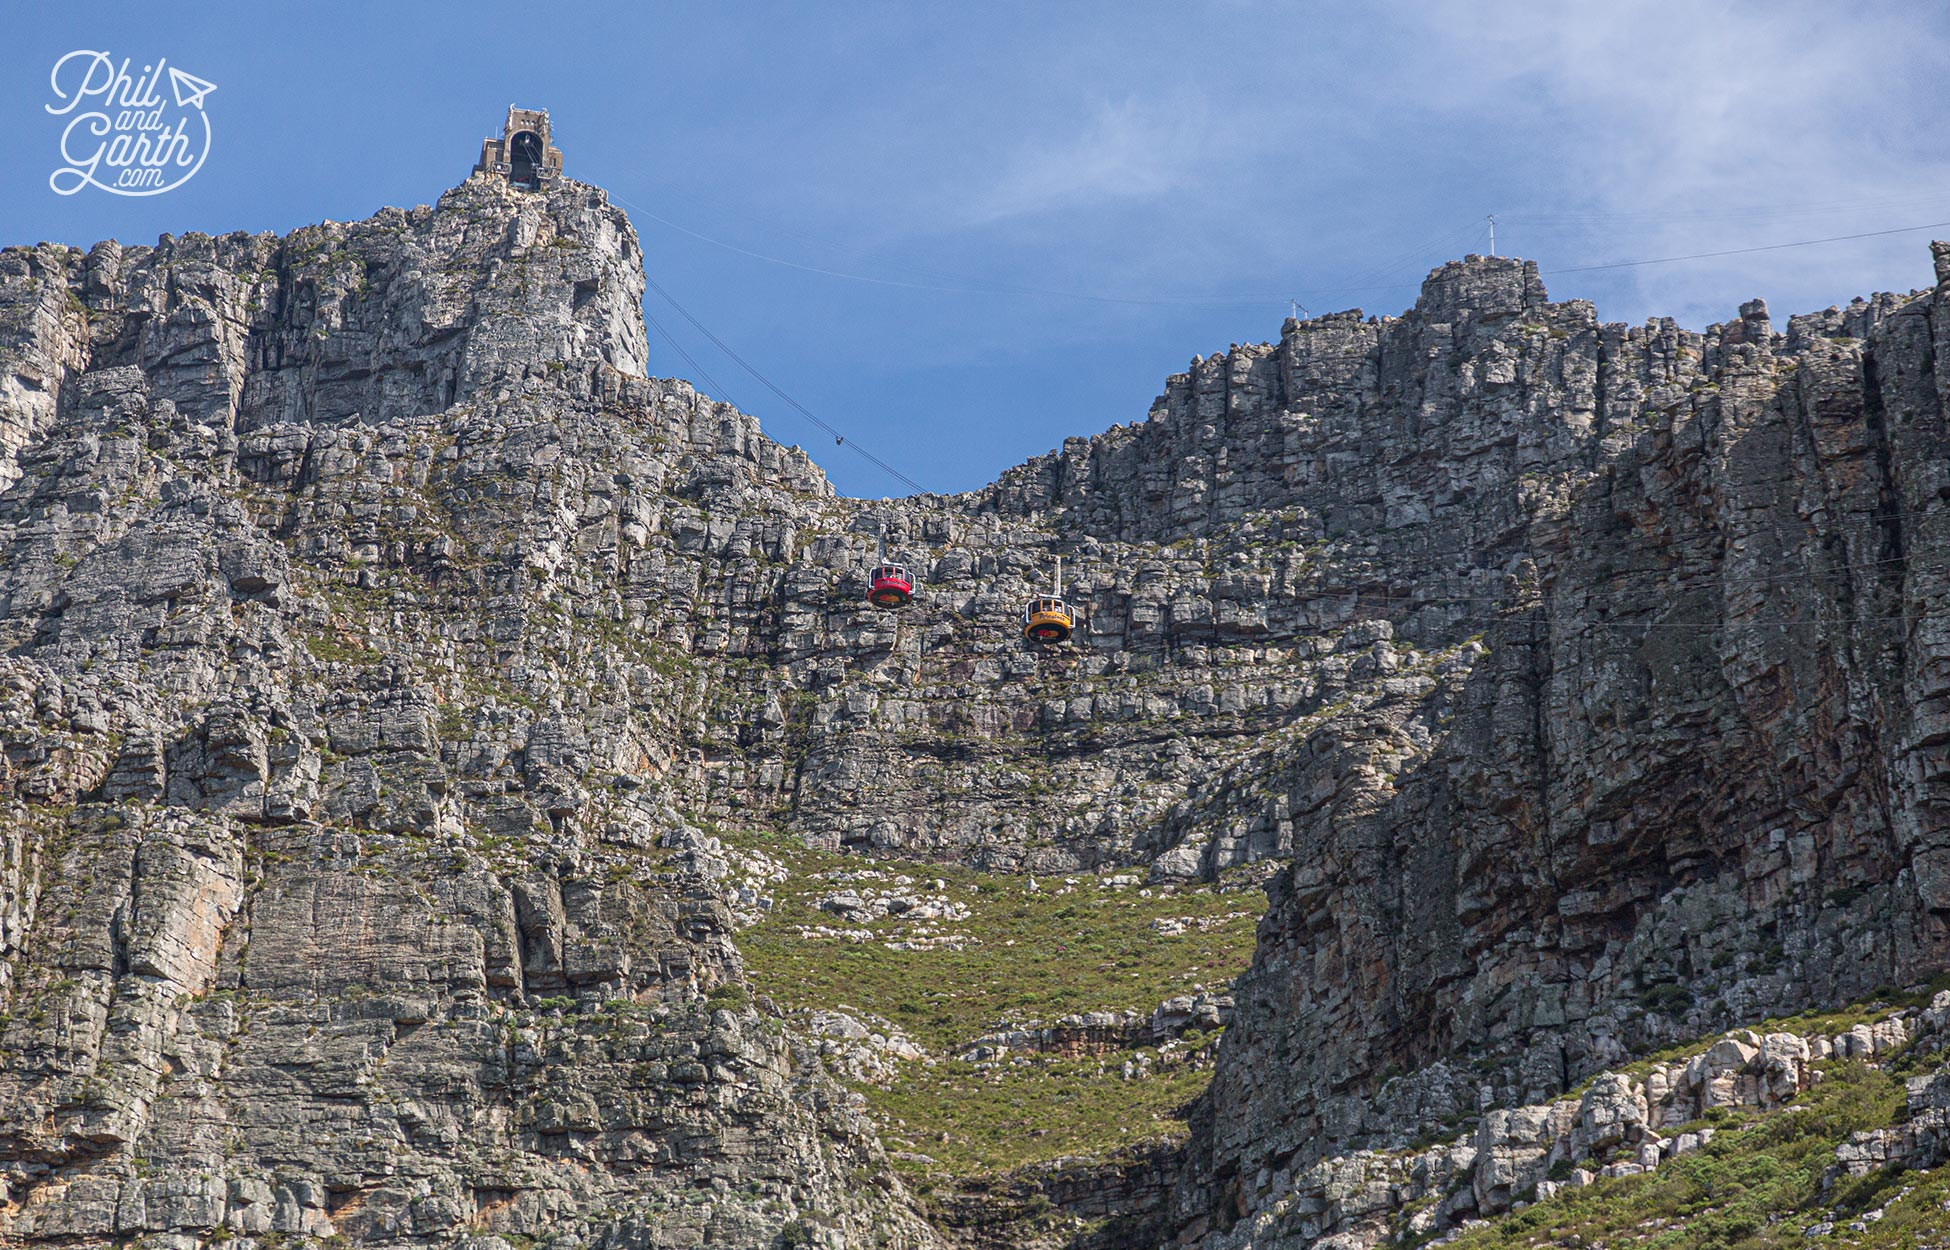 The revolving cable cars that take you to the top of Table Mountain